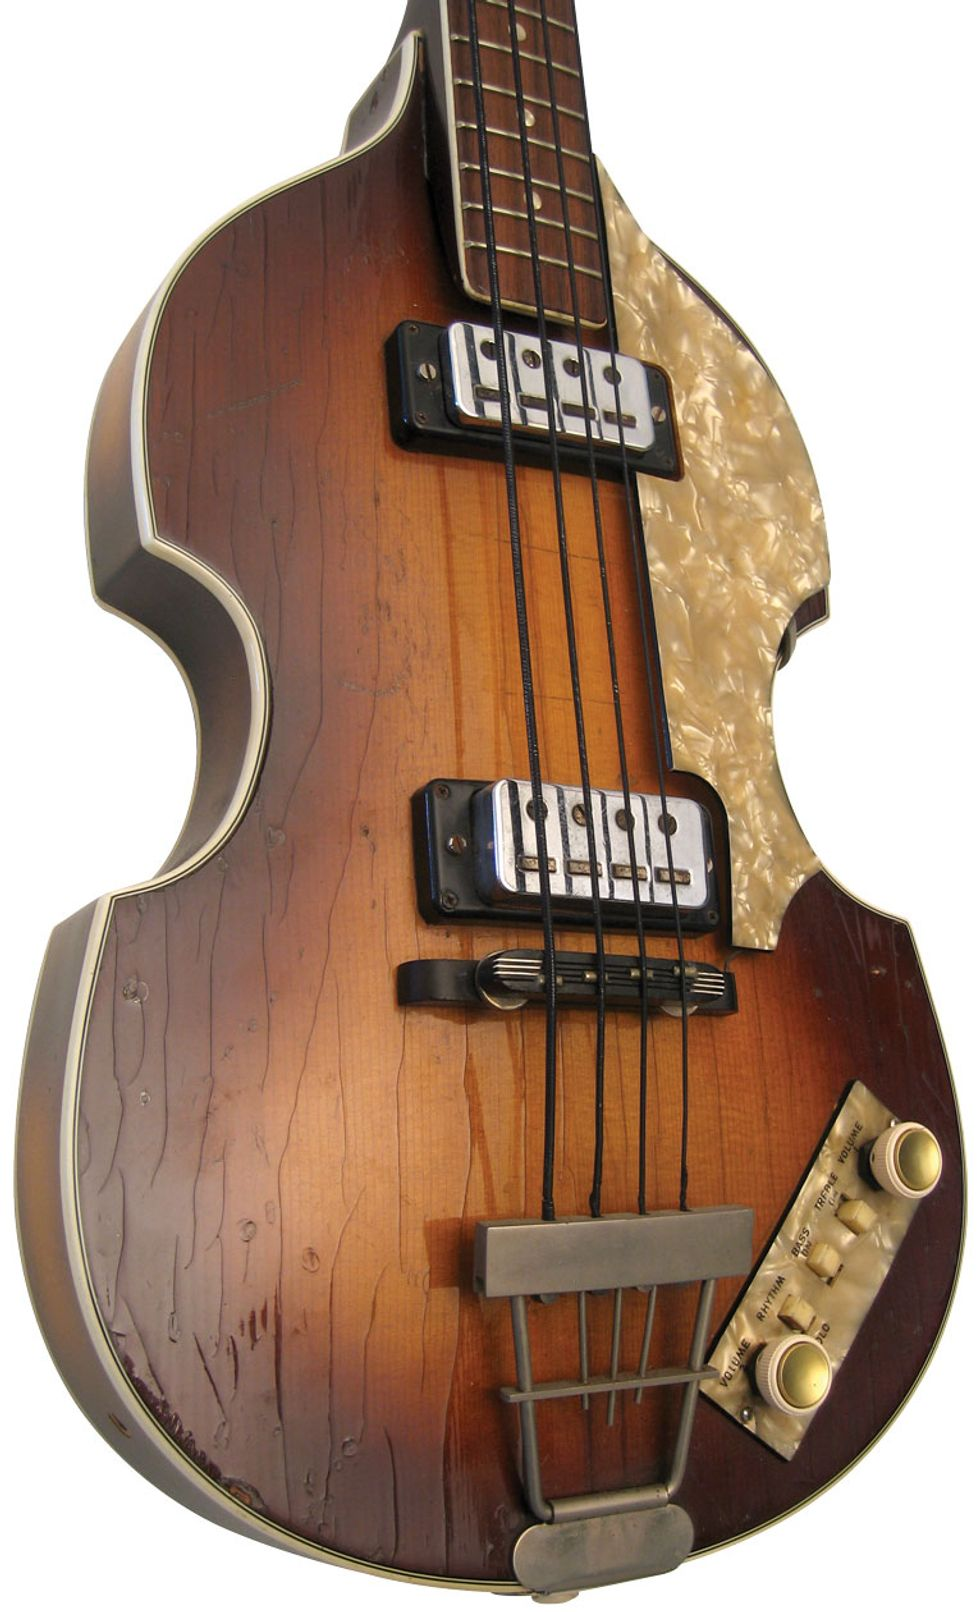 Bass Bench: Oil, Shellac, Nitro, Polyester, and Urethane: What Gives?